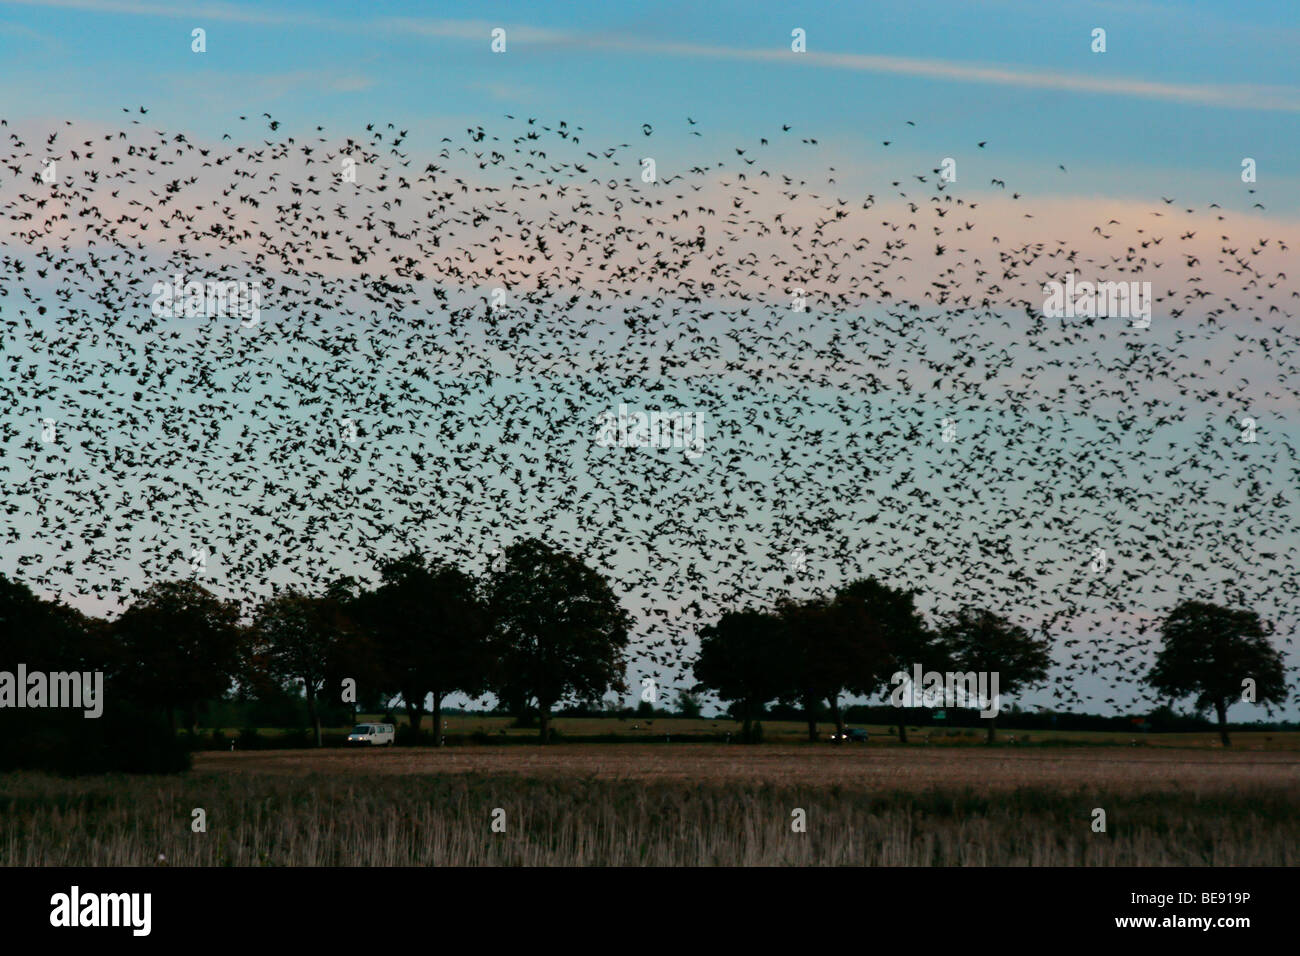 Large flock of starlings (Sturnus vulgaris) at their roost - Stock Image